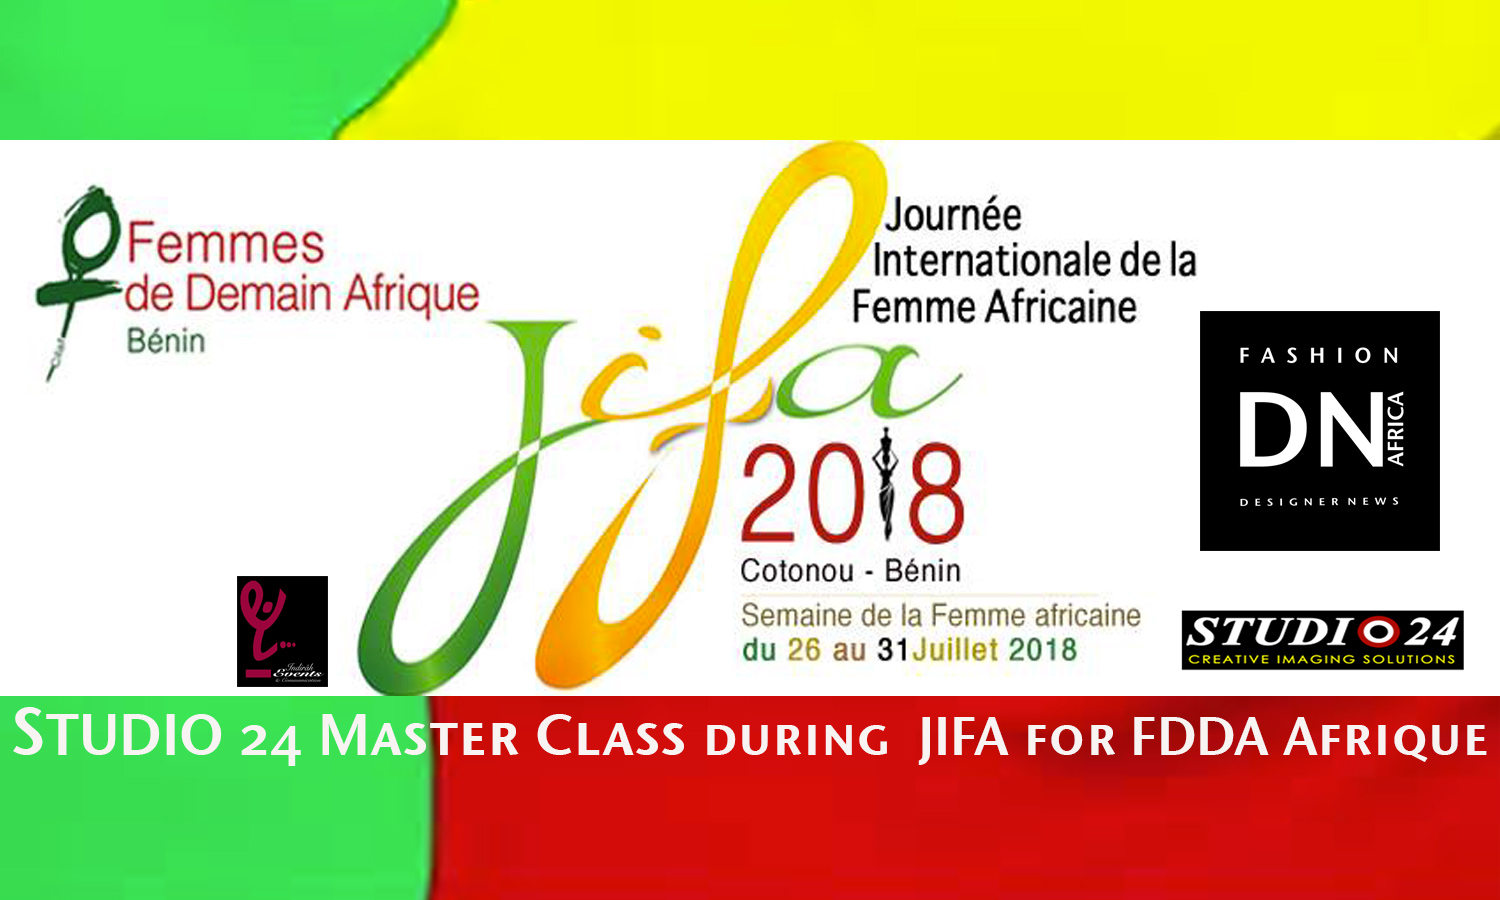 AFRICAN FASHION STYLE MAGAZINE - FFDA - Yolande Esternida - President of FDDA for Africa - International Day of the African Woman Cotonou Benin -Indira Events - indira Yanni Domingo - DN AFRICA - STUDIO 24 NIGERIA - chamber of commerce of benin